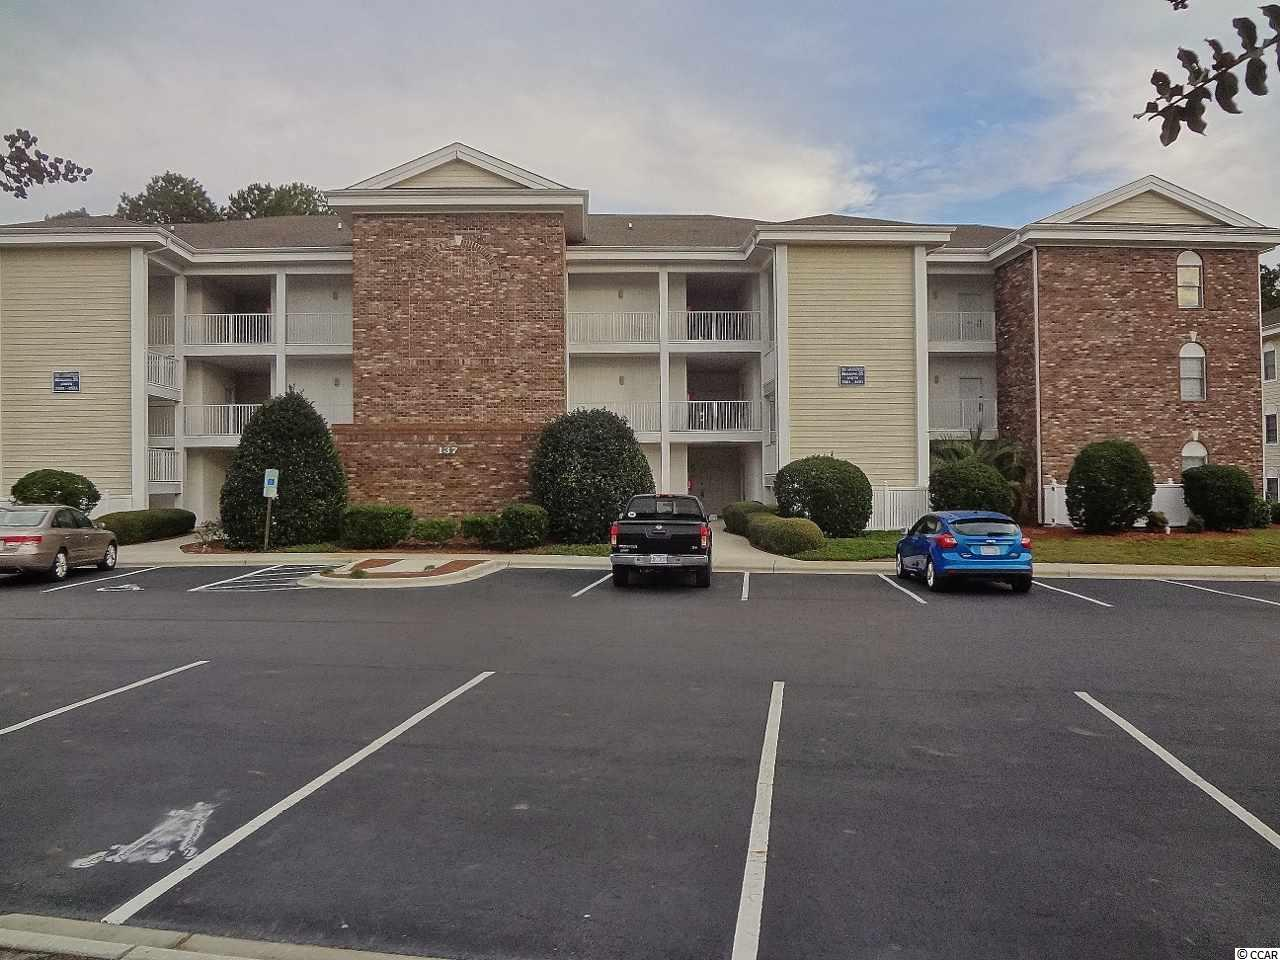 Condo in Sea Trail - Sunset Beach, NC : Sunset Beach South Carolina